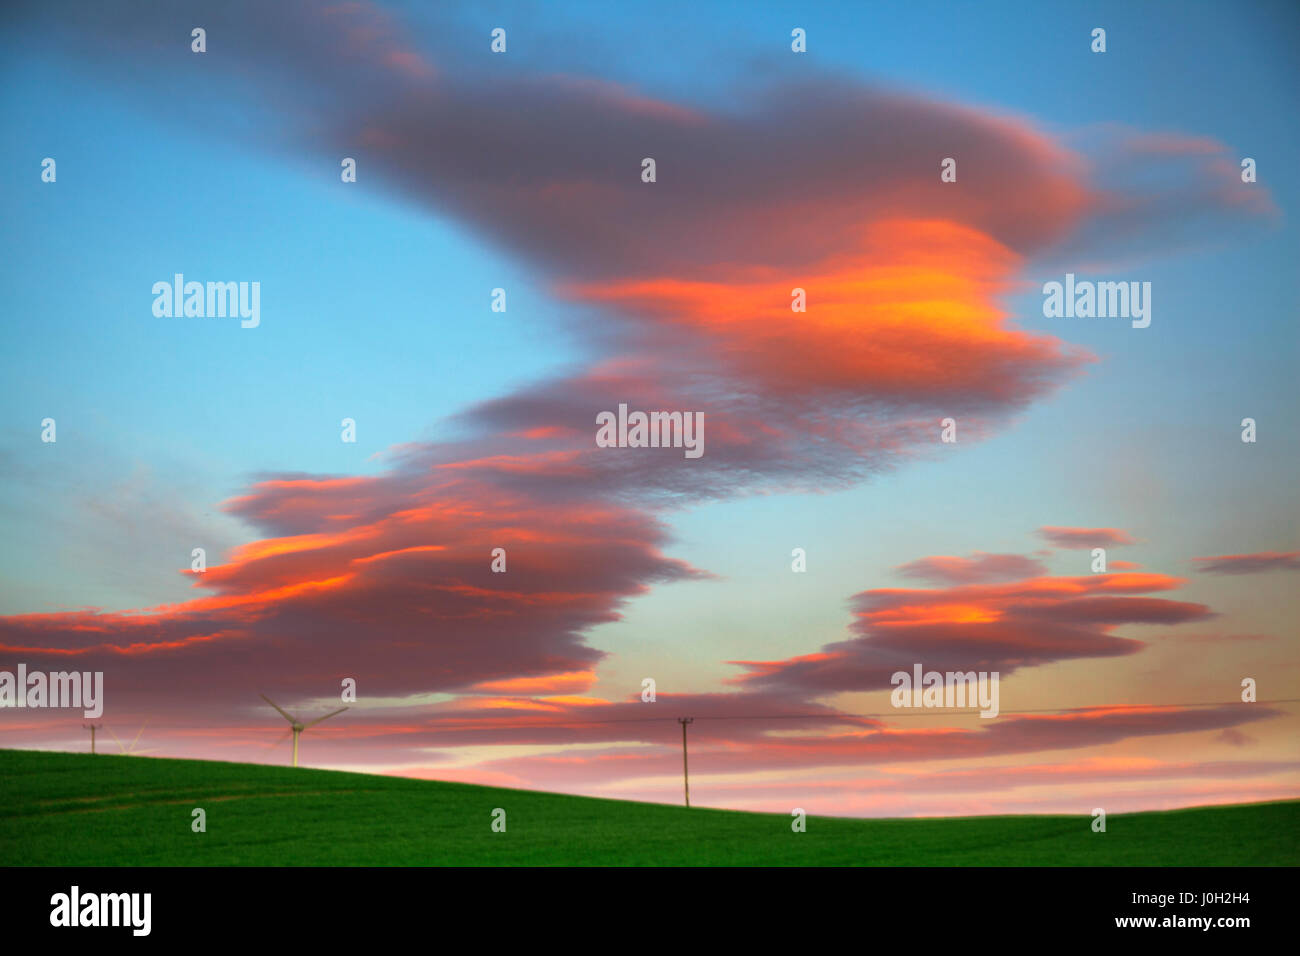 Stonehaven, Scotland, UK UK Weather. 13th April, 2017. Lenticular 'UFO' Clouds form at dawn. Lenticular - Stock Image